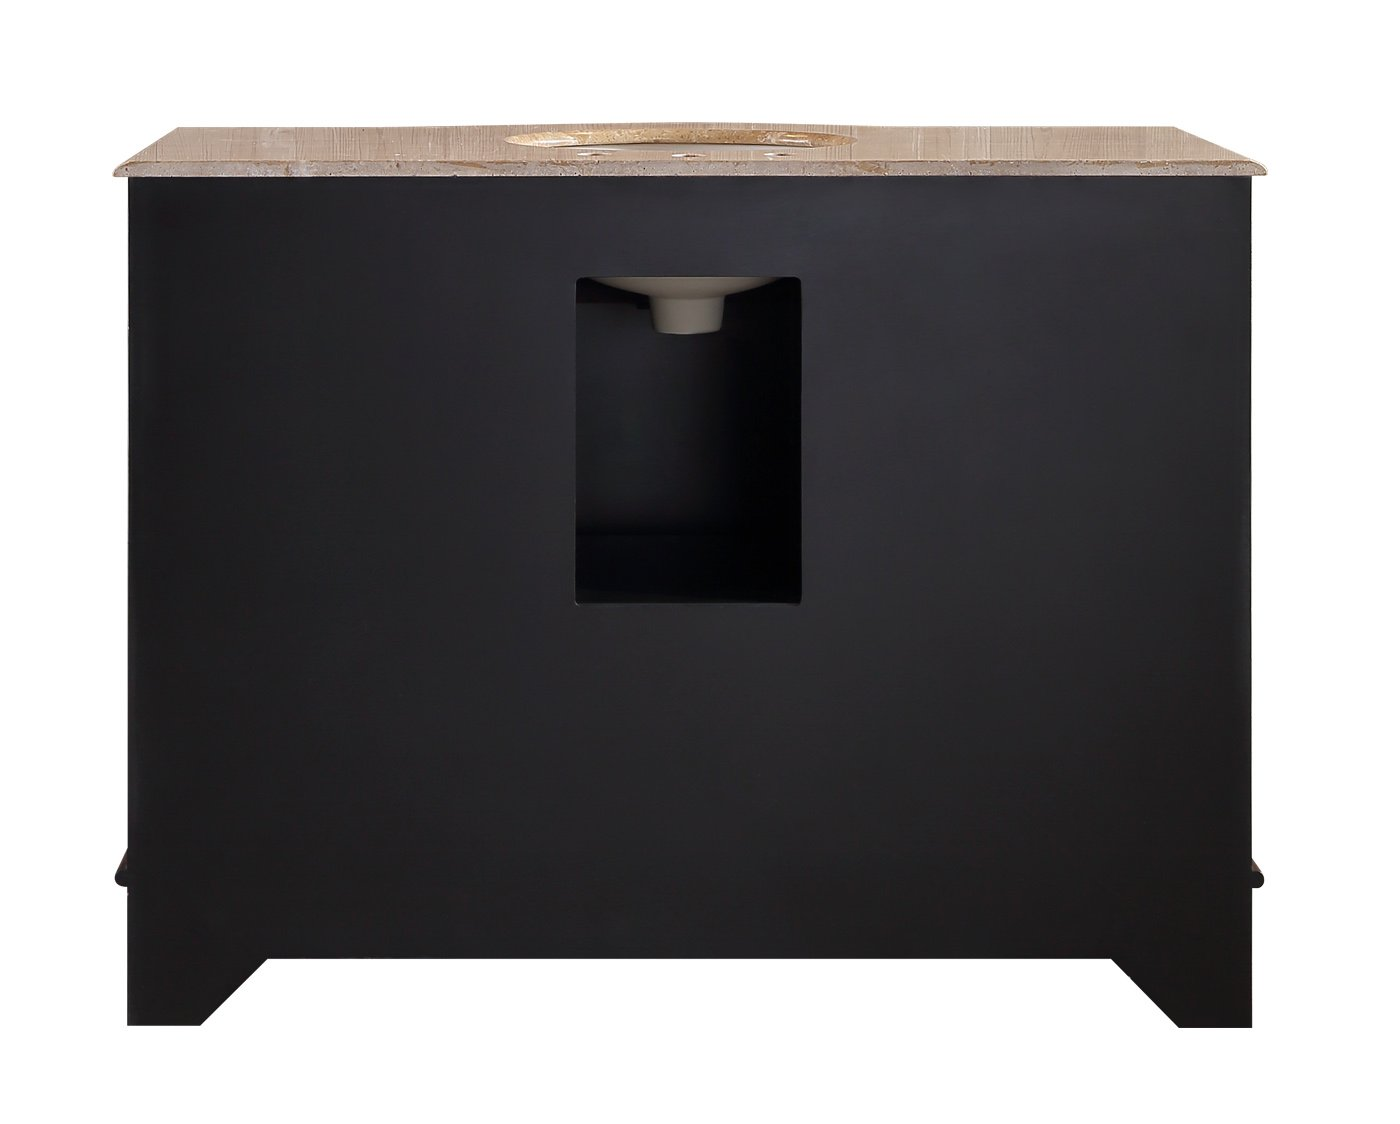 Stufurhome GM-6123-48-TR 48-Inch Lotus Single Vanity in Dark Brown Finish with Marble Top in Travertine with White Undermount Sink and Mirror